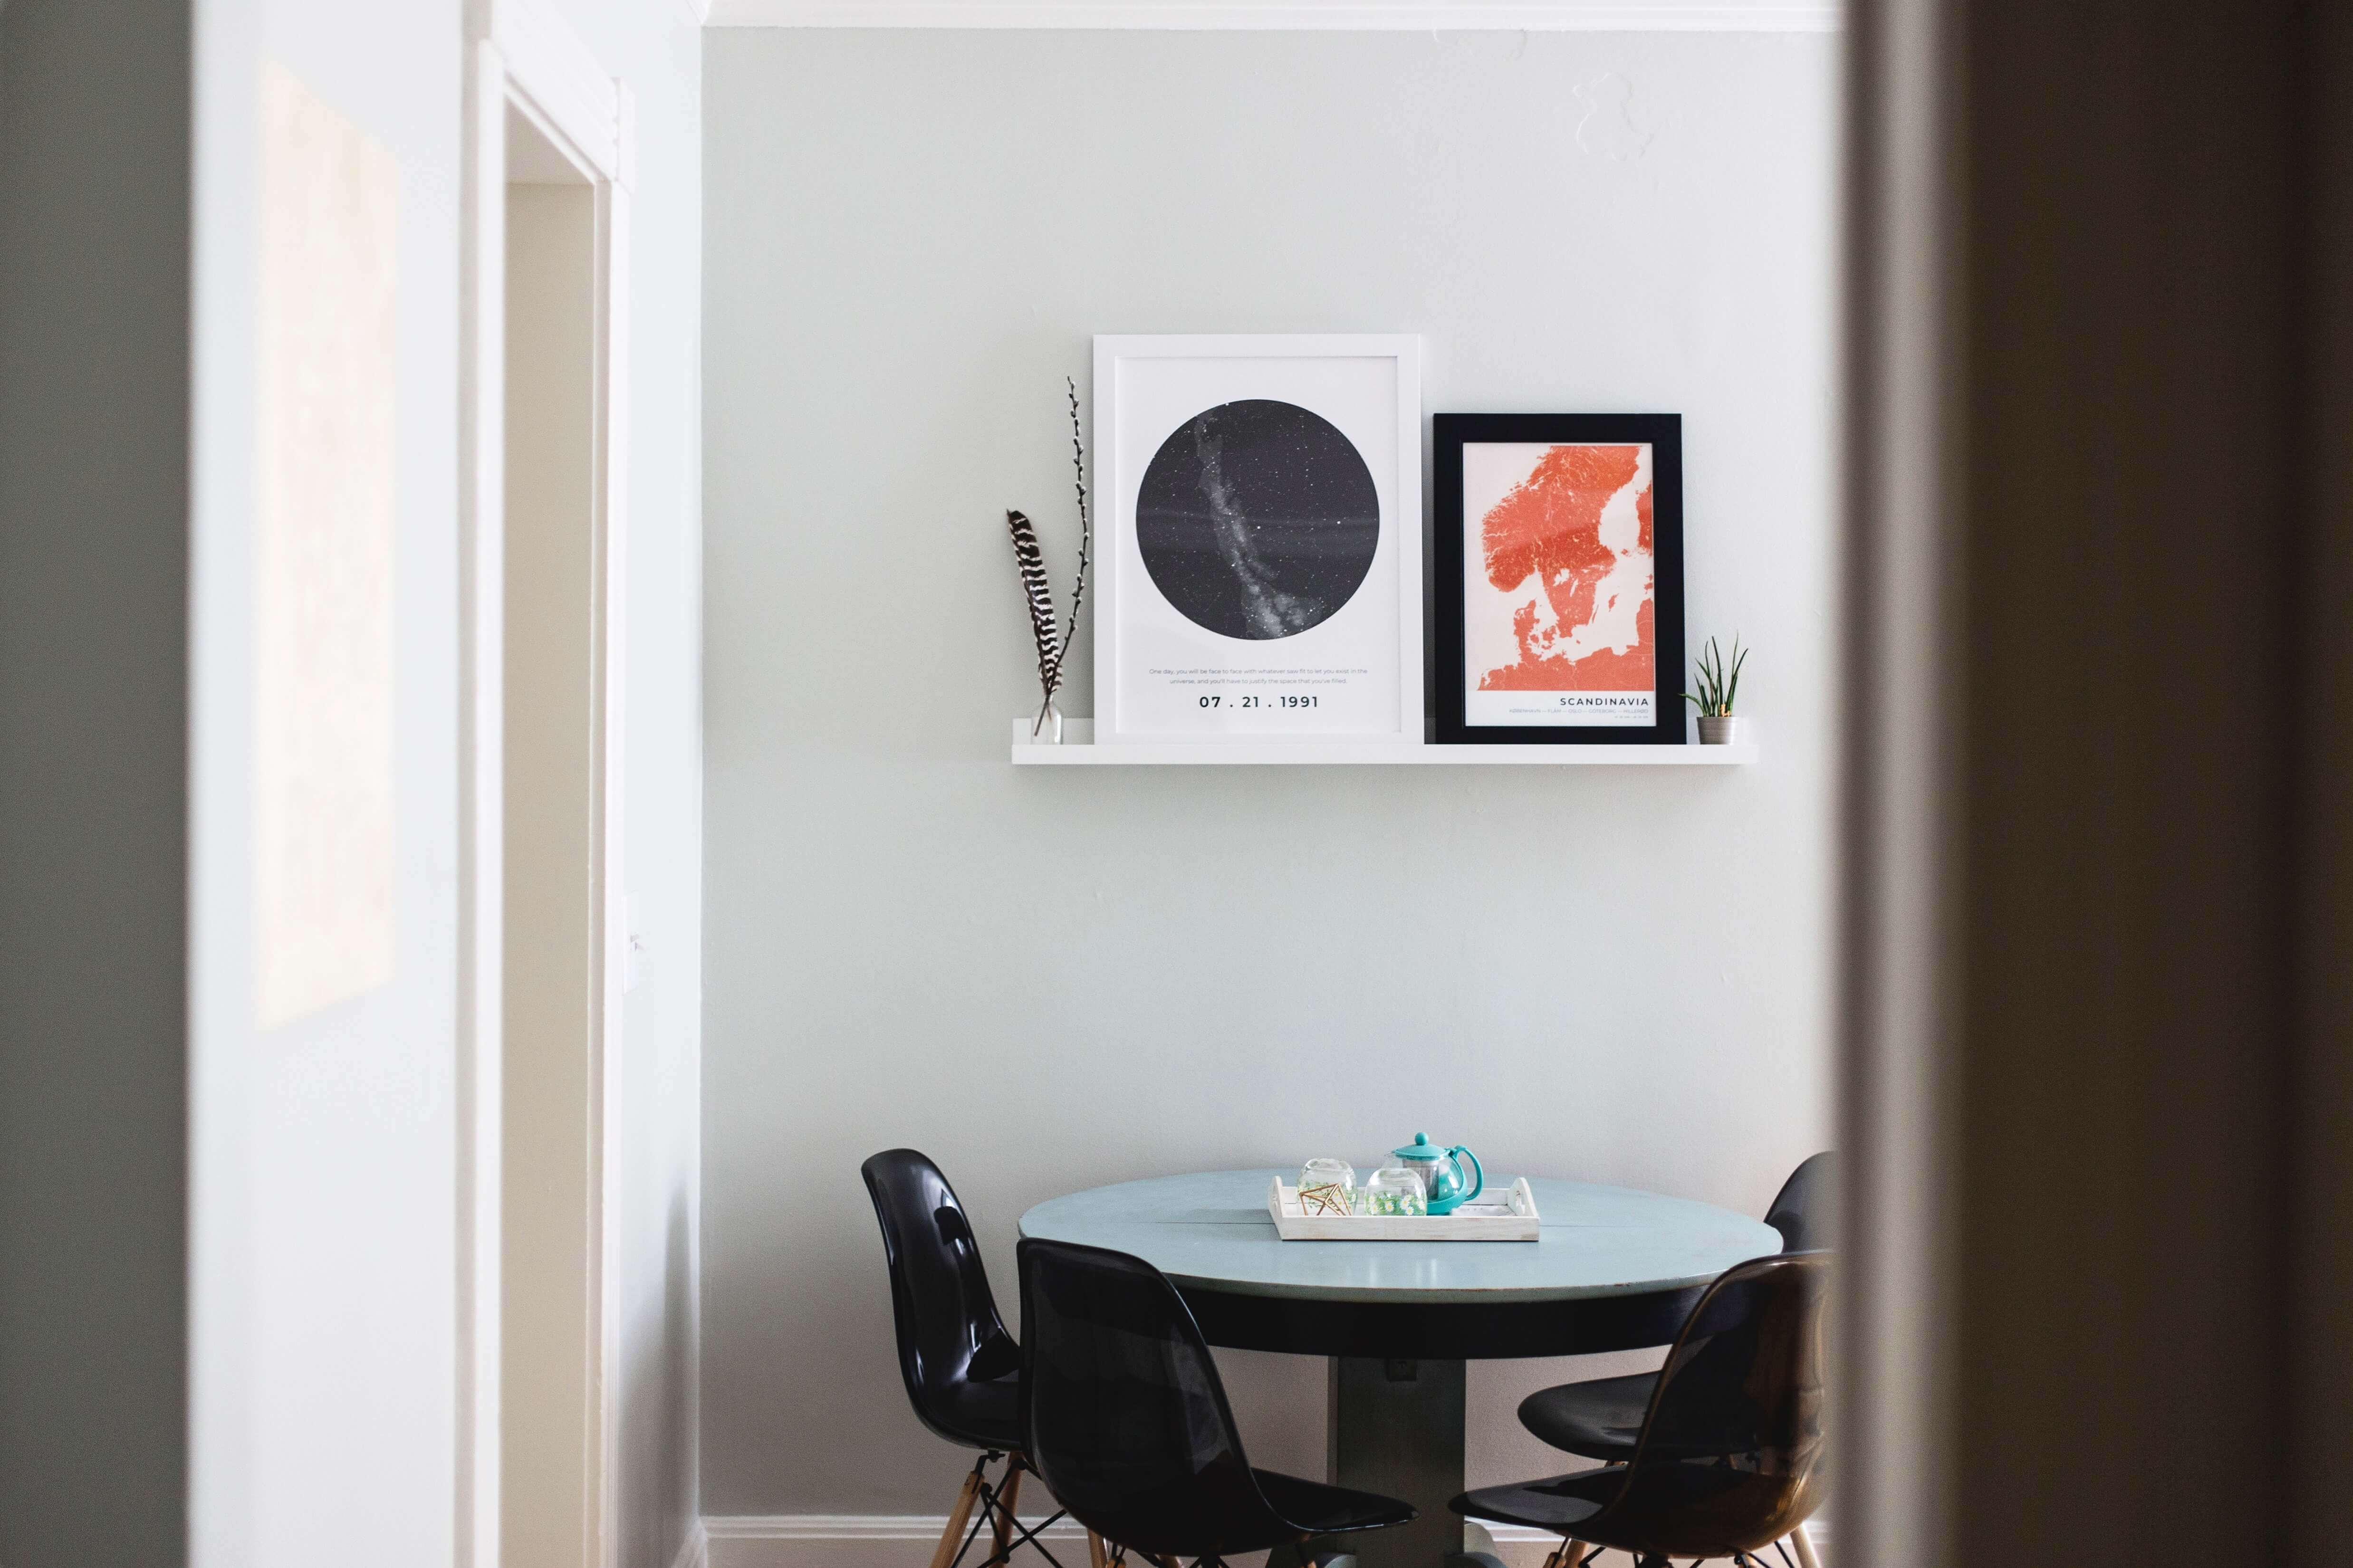 Small round table with black chairs.